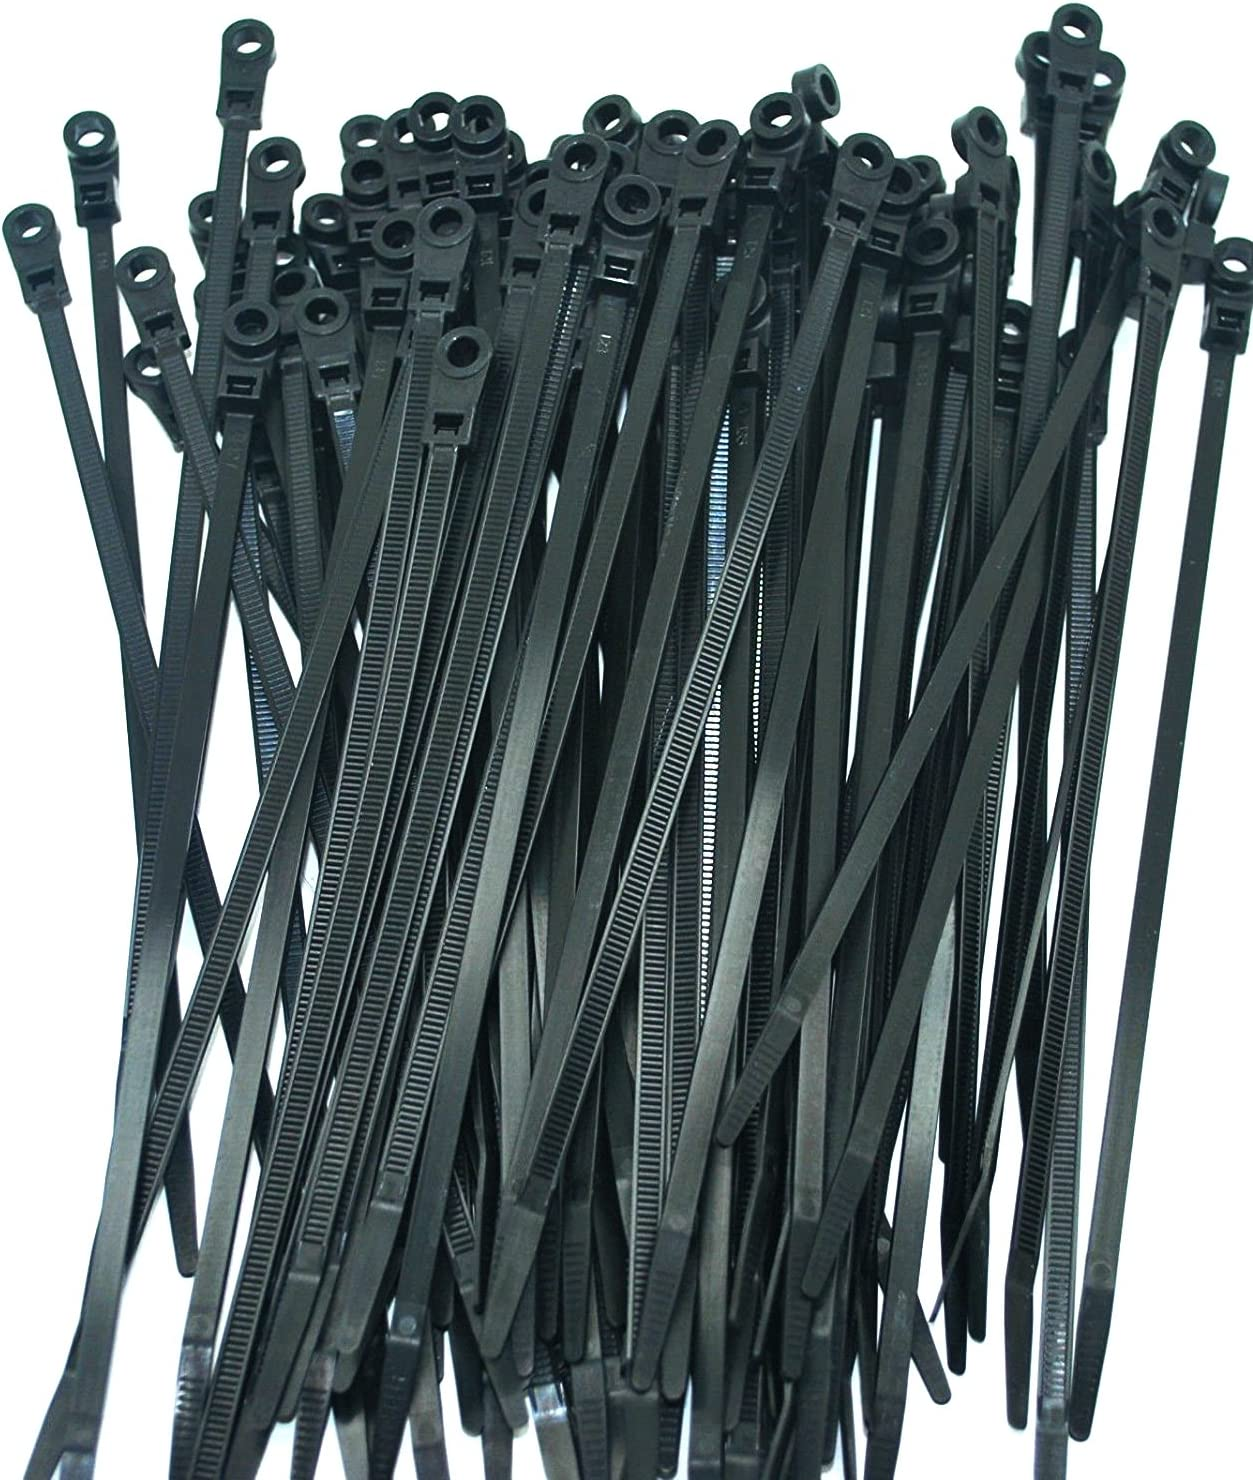 """100 PERFECT VISION BLACK MOUNTING HOLE CABLE TIE ZIP WRAPS 7"""" SATELLITE/CABLE CT7BLK-MH (Original Version) 81j4SHp5ABL"""